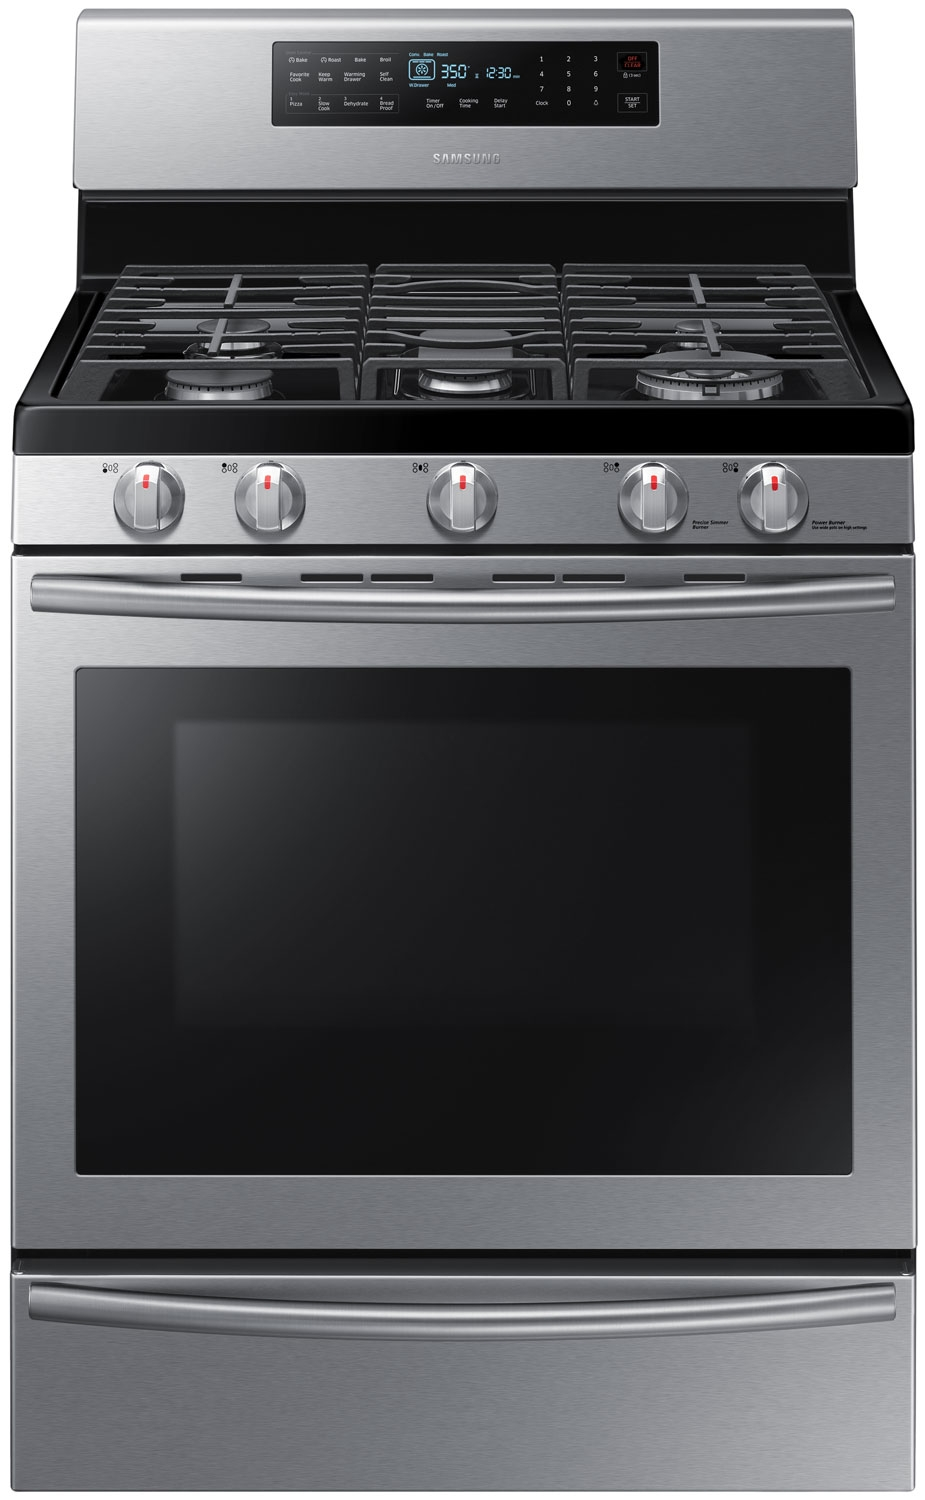 Samsung Stainless Freestanding Gas Range Nx58h5650ws Aa